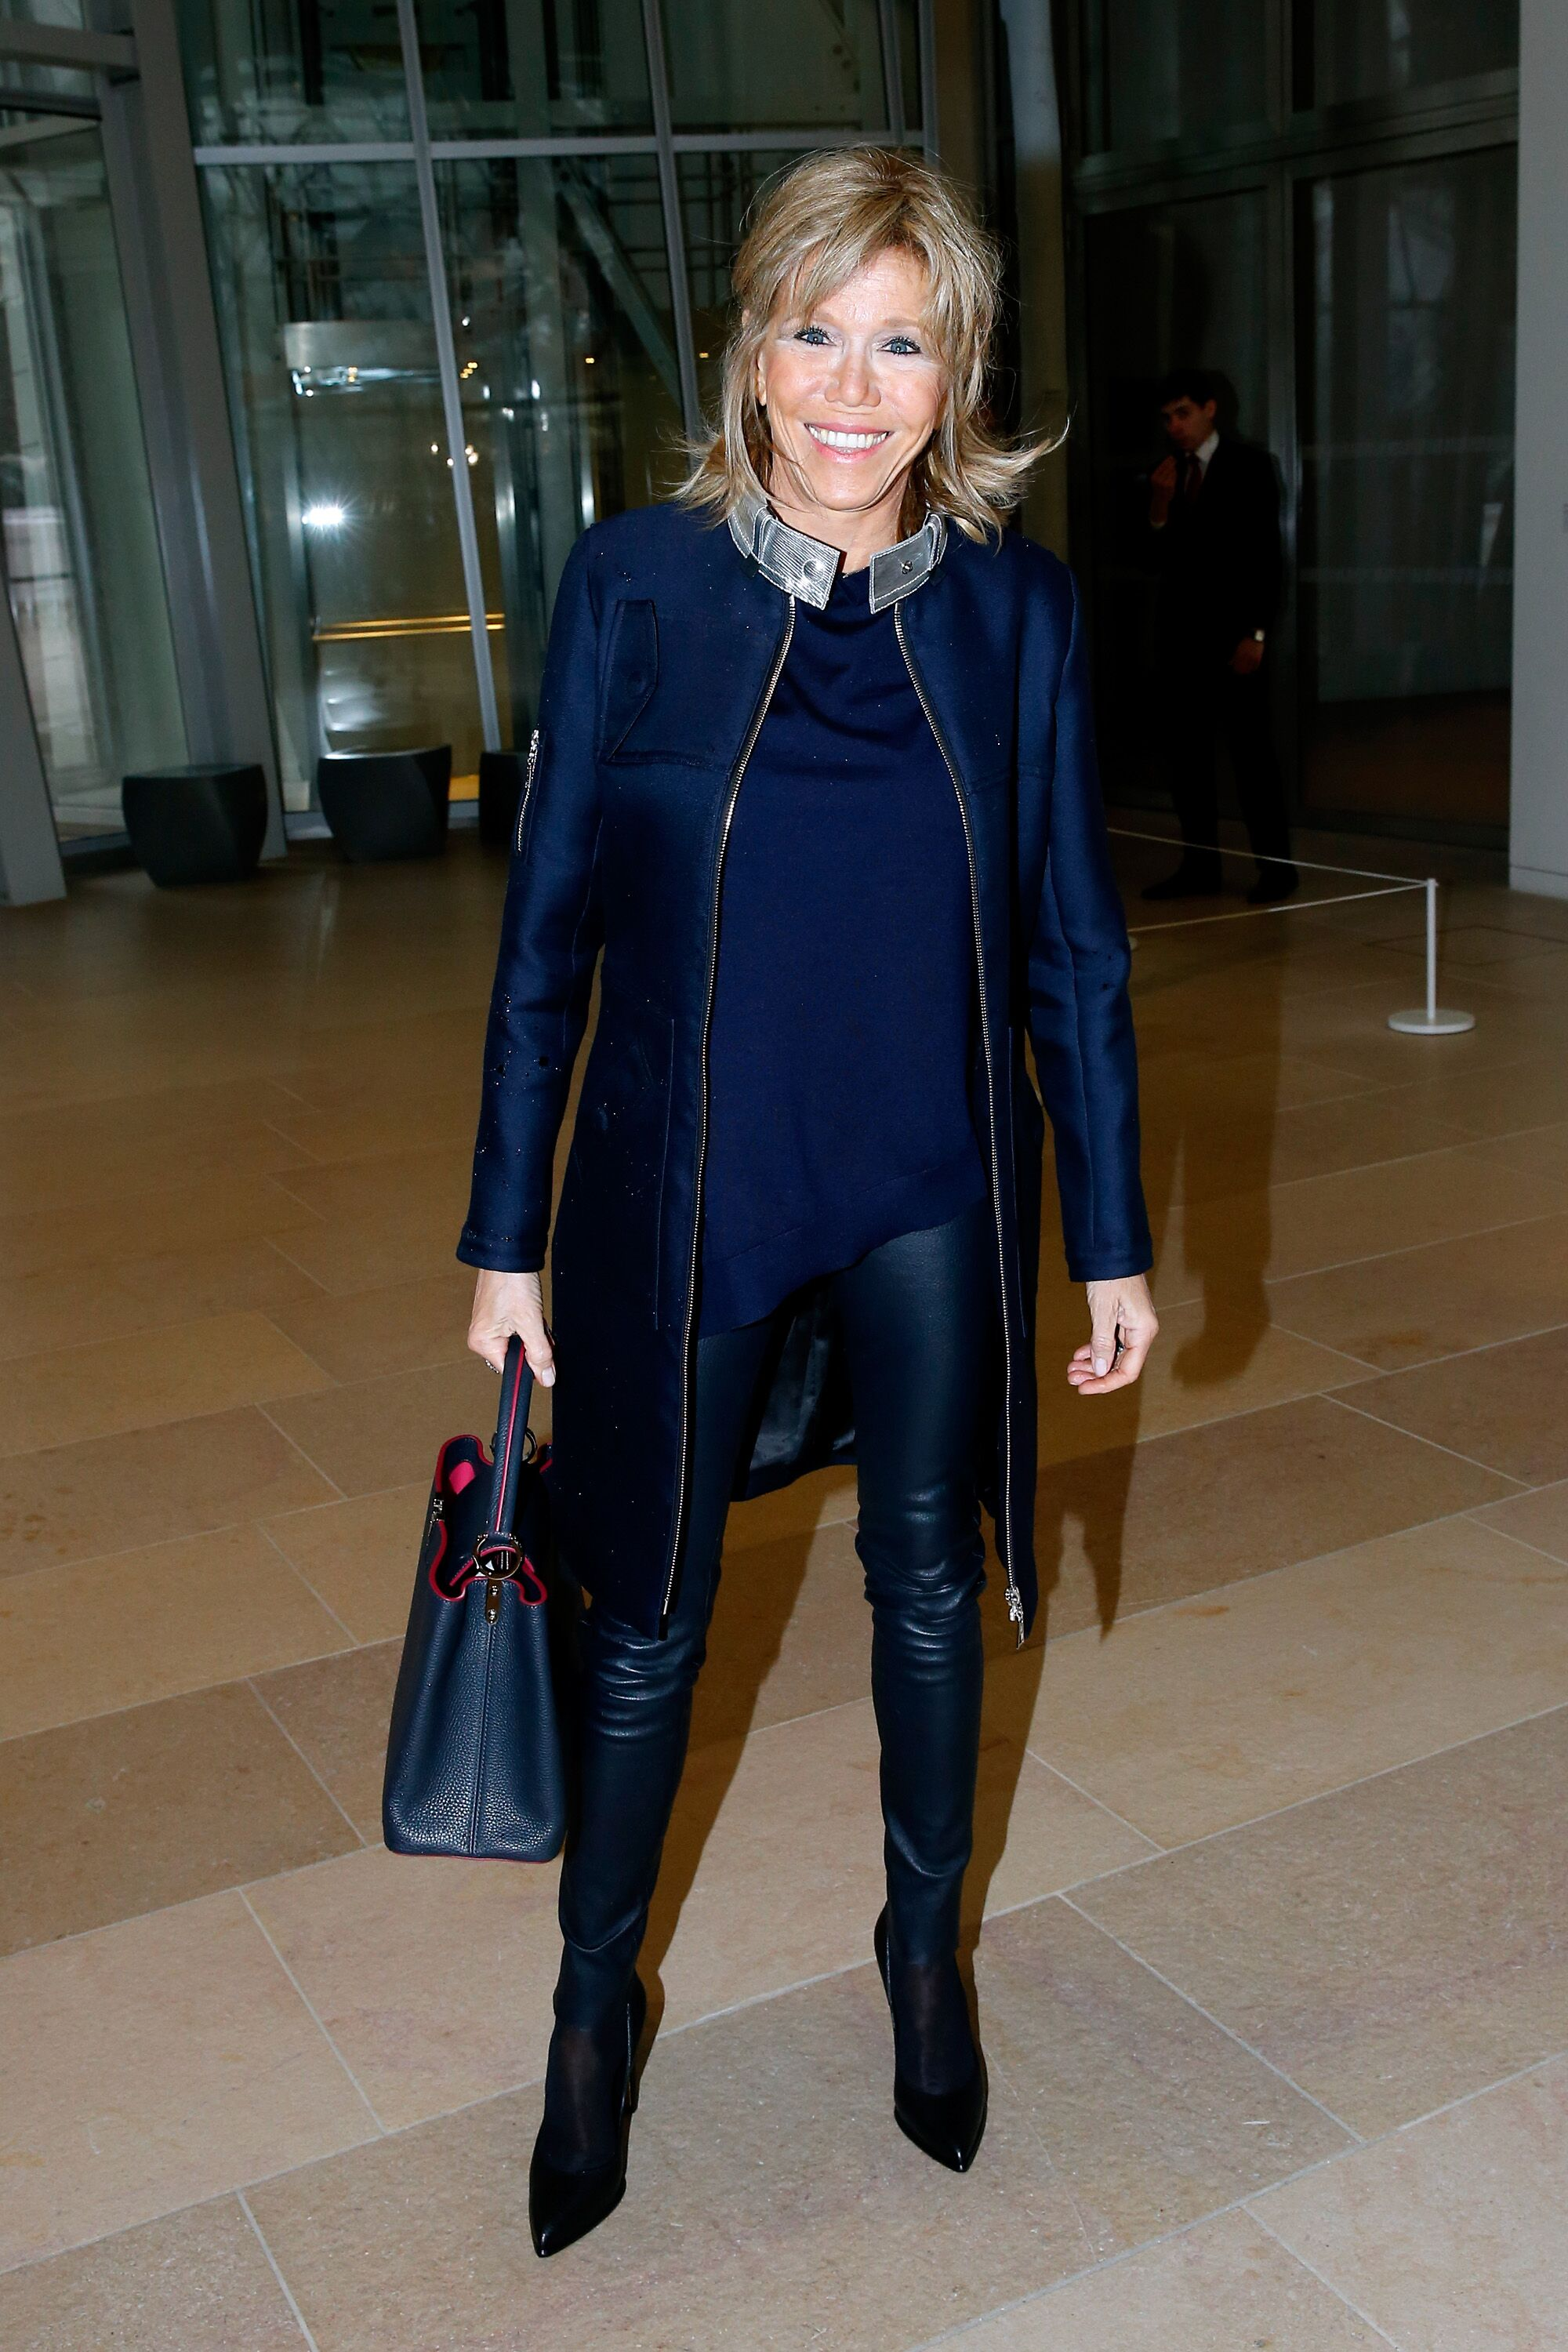 Brigitte Macron à la Fondation Louis Vuitton le 9 mars 2016 à Paris, France. | Photo : Getty Images